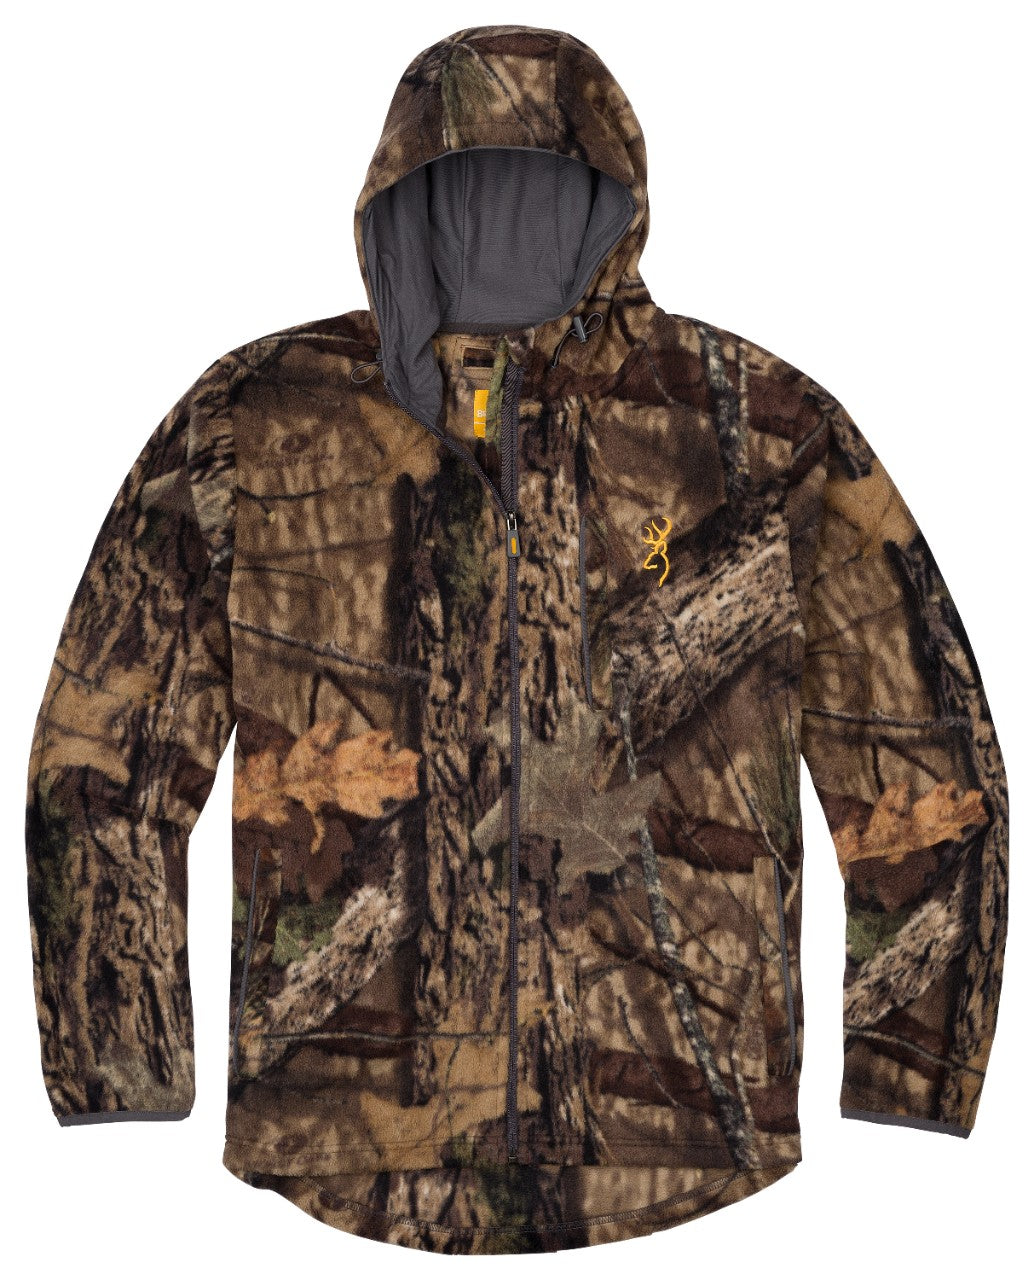 JKT,WASATCH-CB FLEECE,MOBUC,2XL